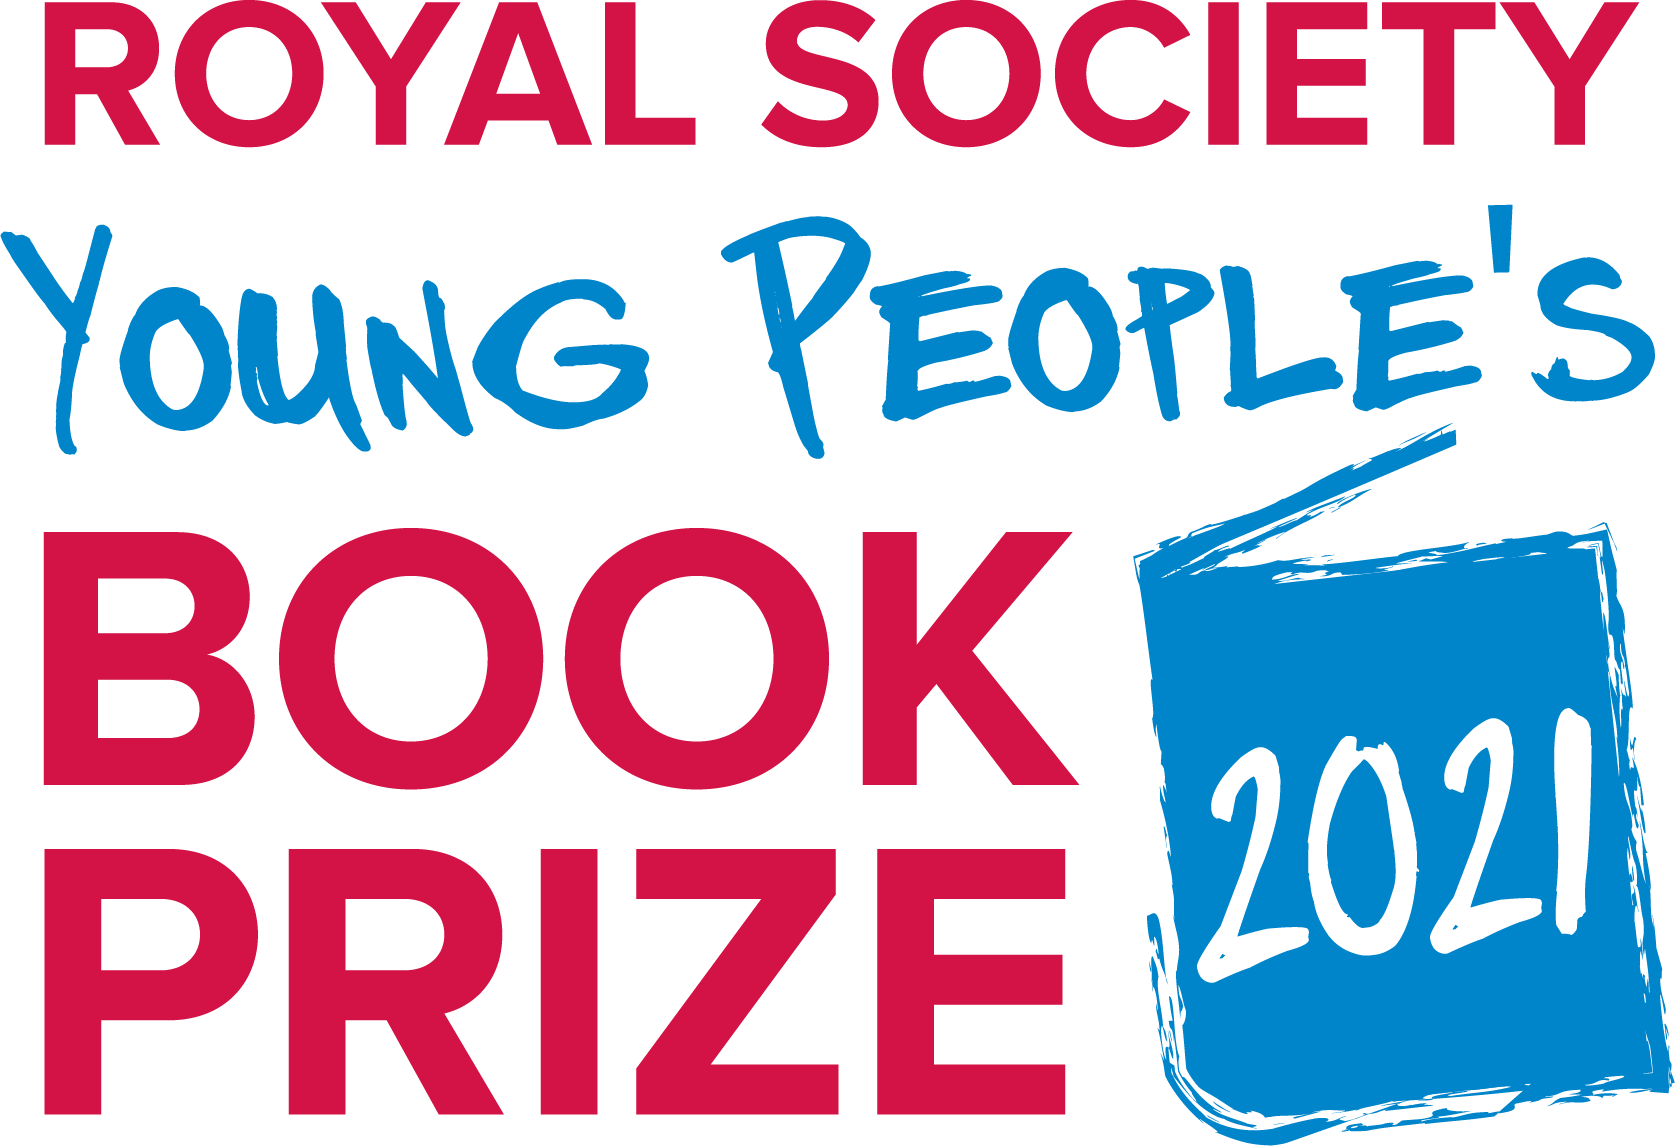 Young People's Book Prize logo